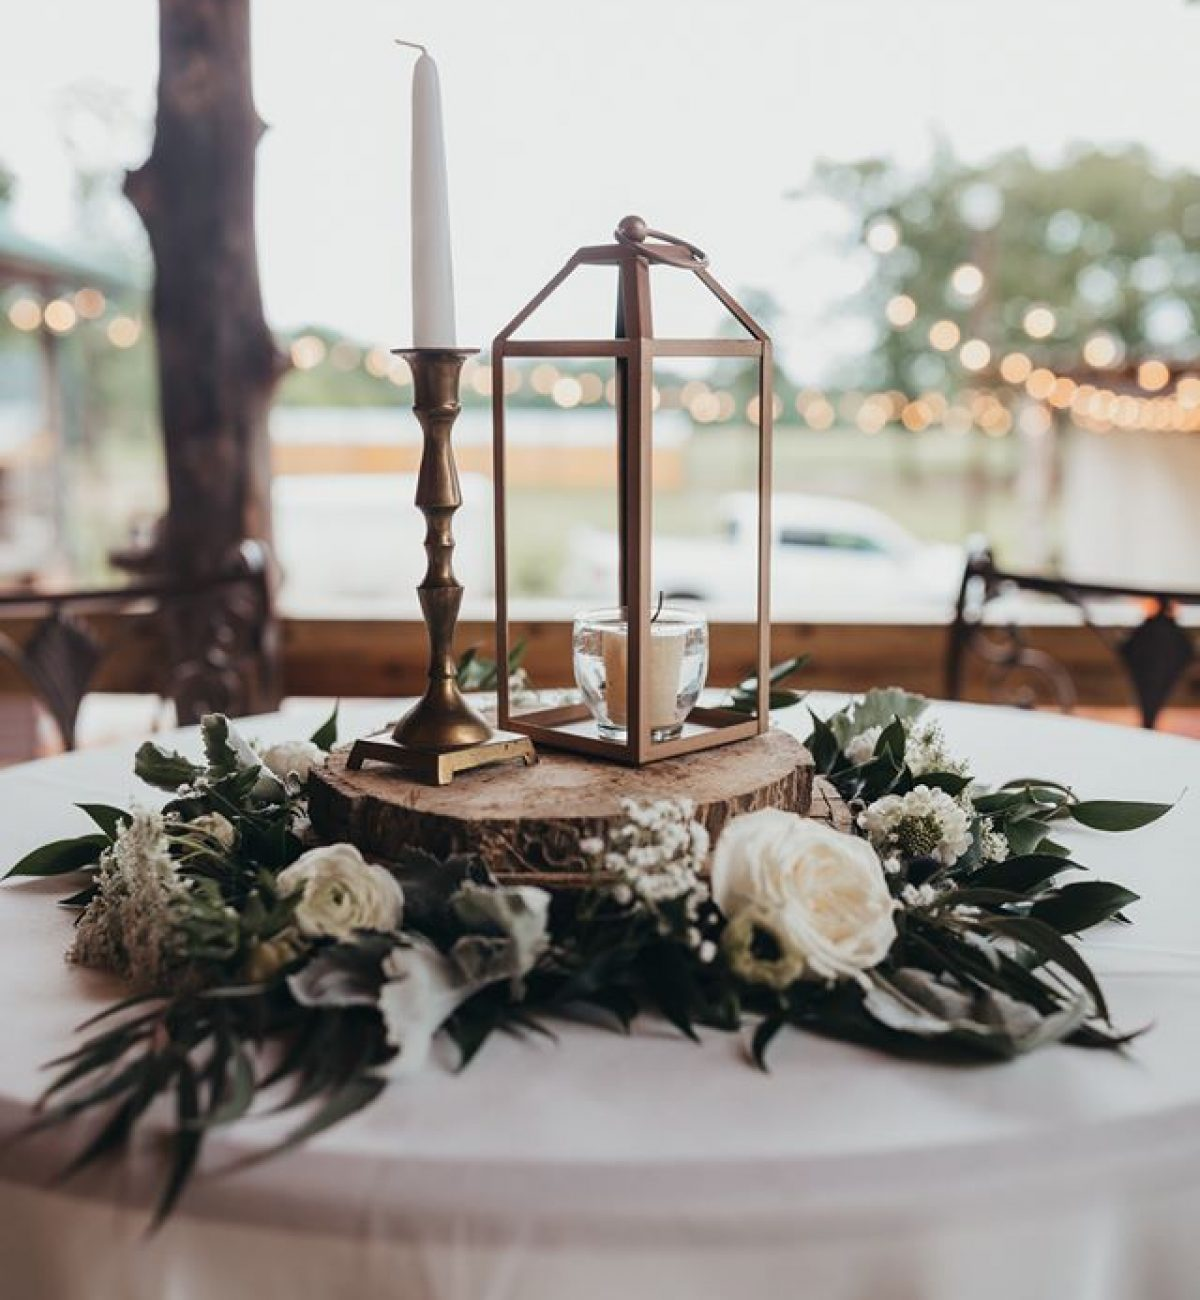 wedding decor on table at Wylde Acres in Longview, Texas